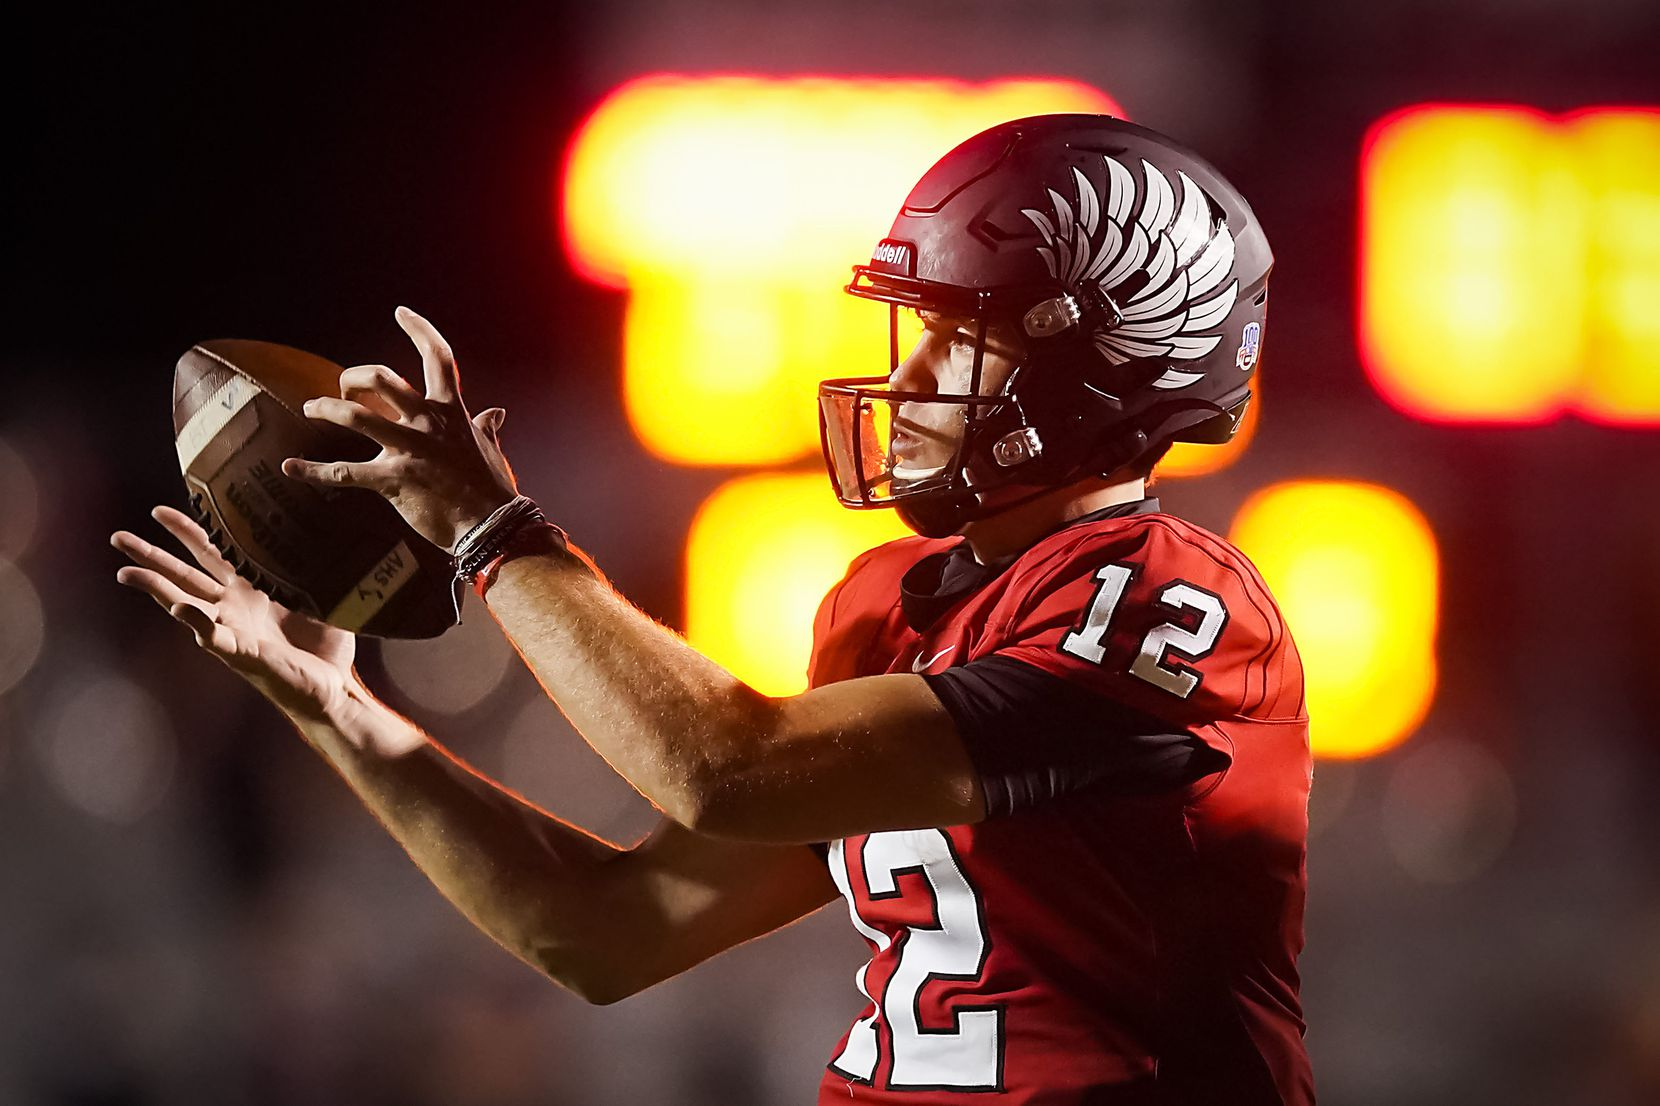 Argyle quarterback CJ Rogers grabs a snap during the first half of a high school football game against Melissa on Friday, Oct. 2, 2020, in Argyle, Texas. (Smiley N. Pool/The Dallas Morning News)